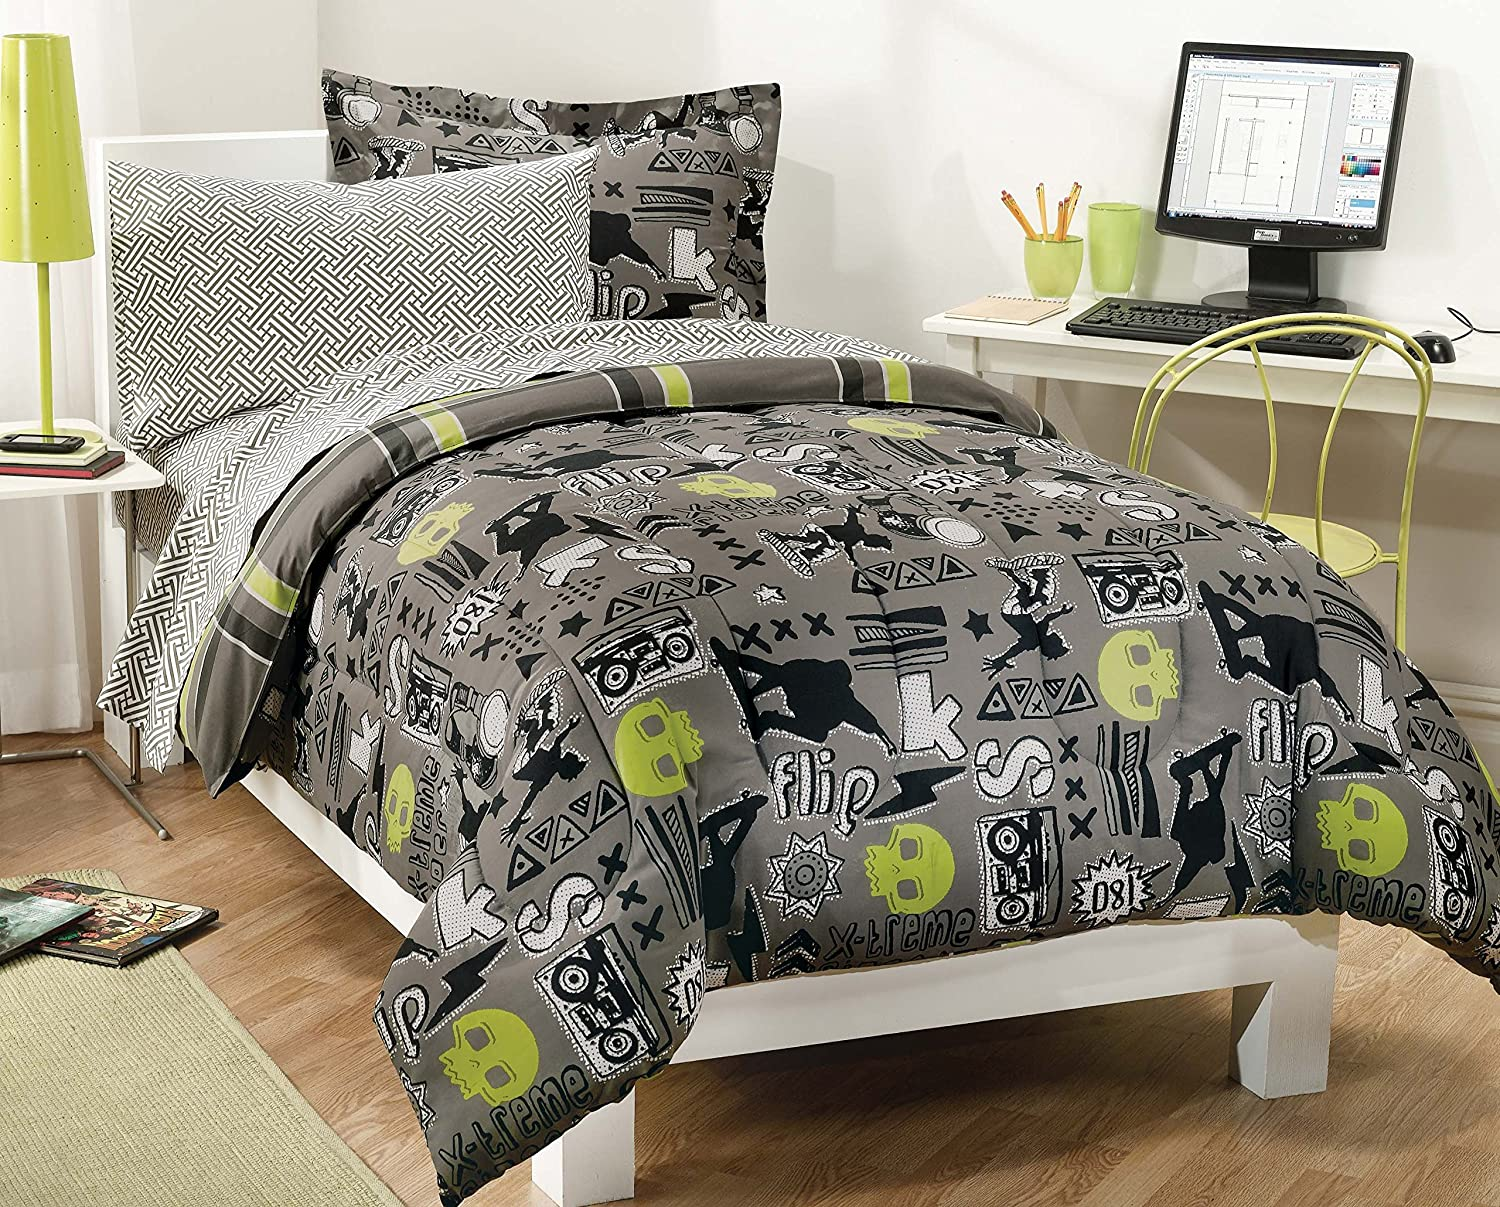 my room extreme skateboarding boys comforter set bedding sets twin kids